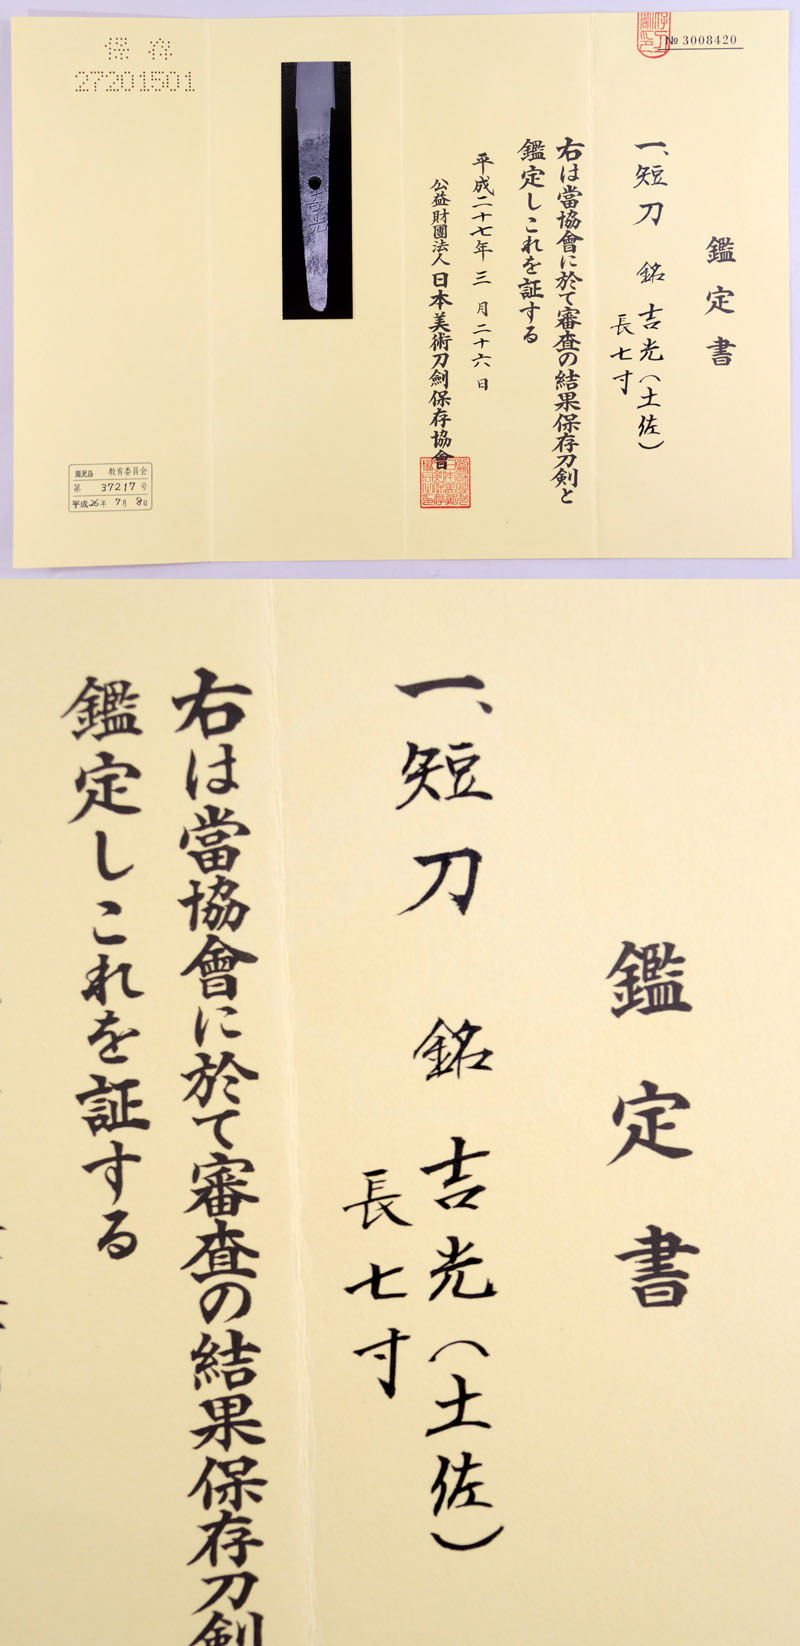 吉光(土佐) Picture of Certificate